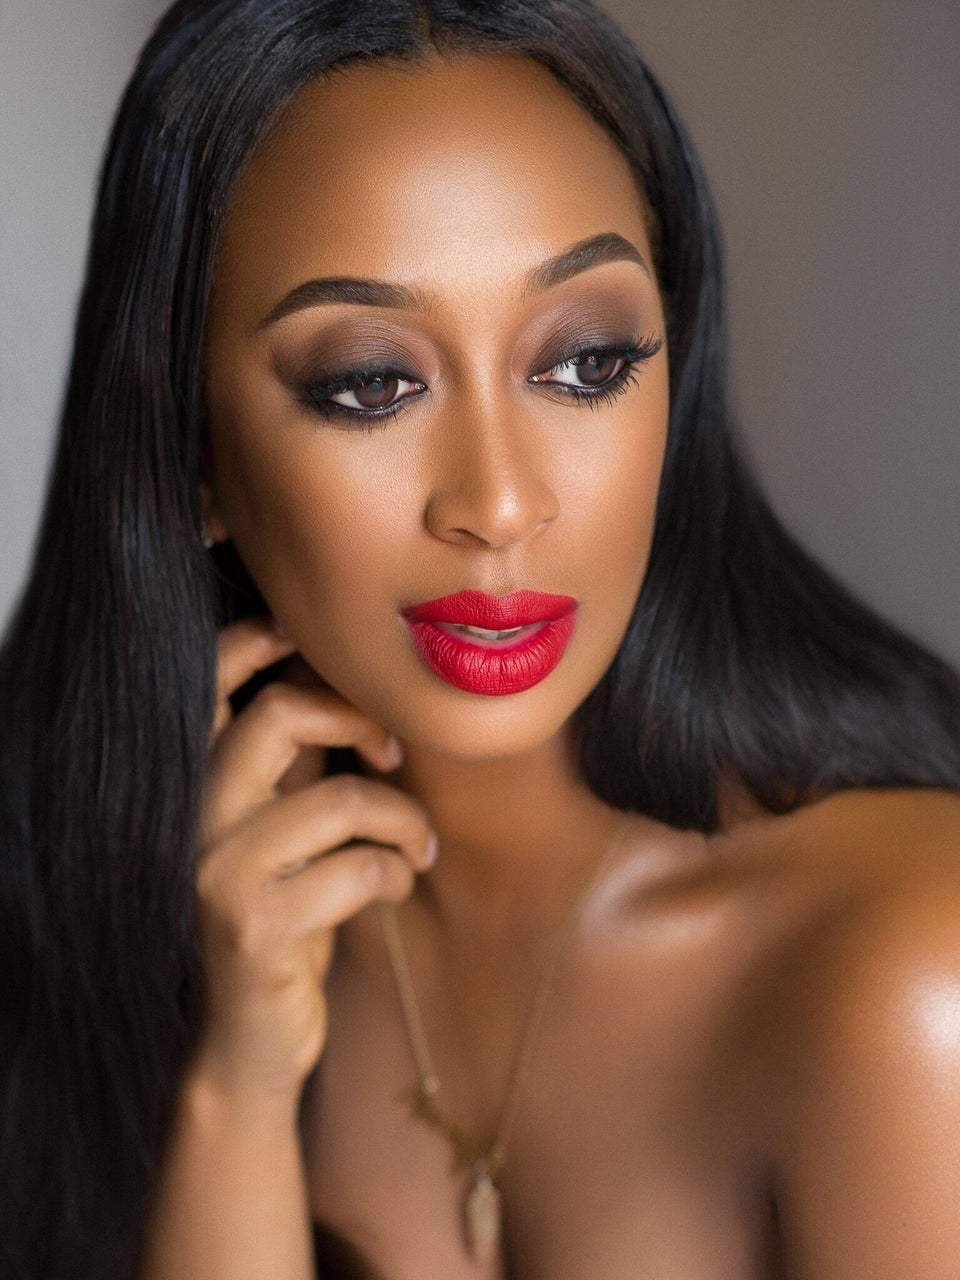 Ask A Makeup Maven: Camara Aunique Reveals The One Product She Uses To Give Black Women That Extra Glow